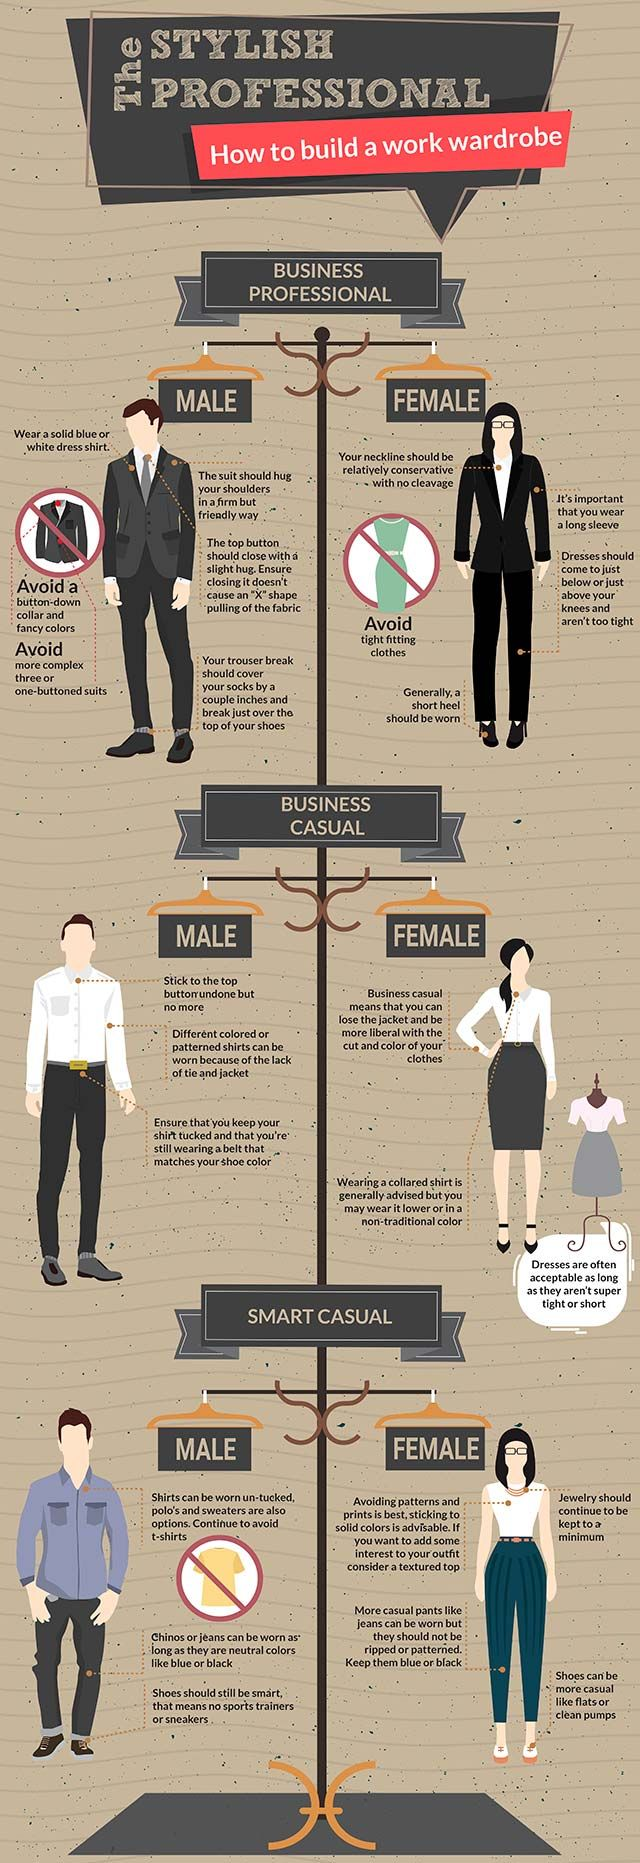 Dress code for smart casual smart casual dress code for men pictures - Infographic For Office Dress Codes Fashion Tipsdo You Needwhat Is Business Casualsmart